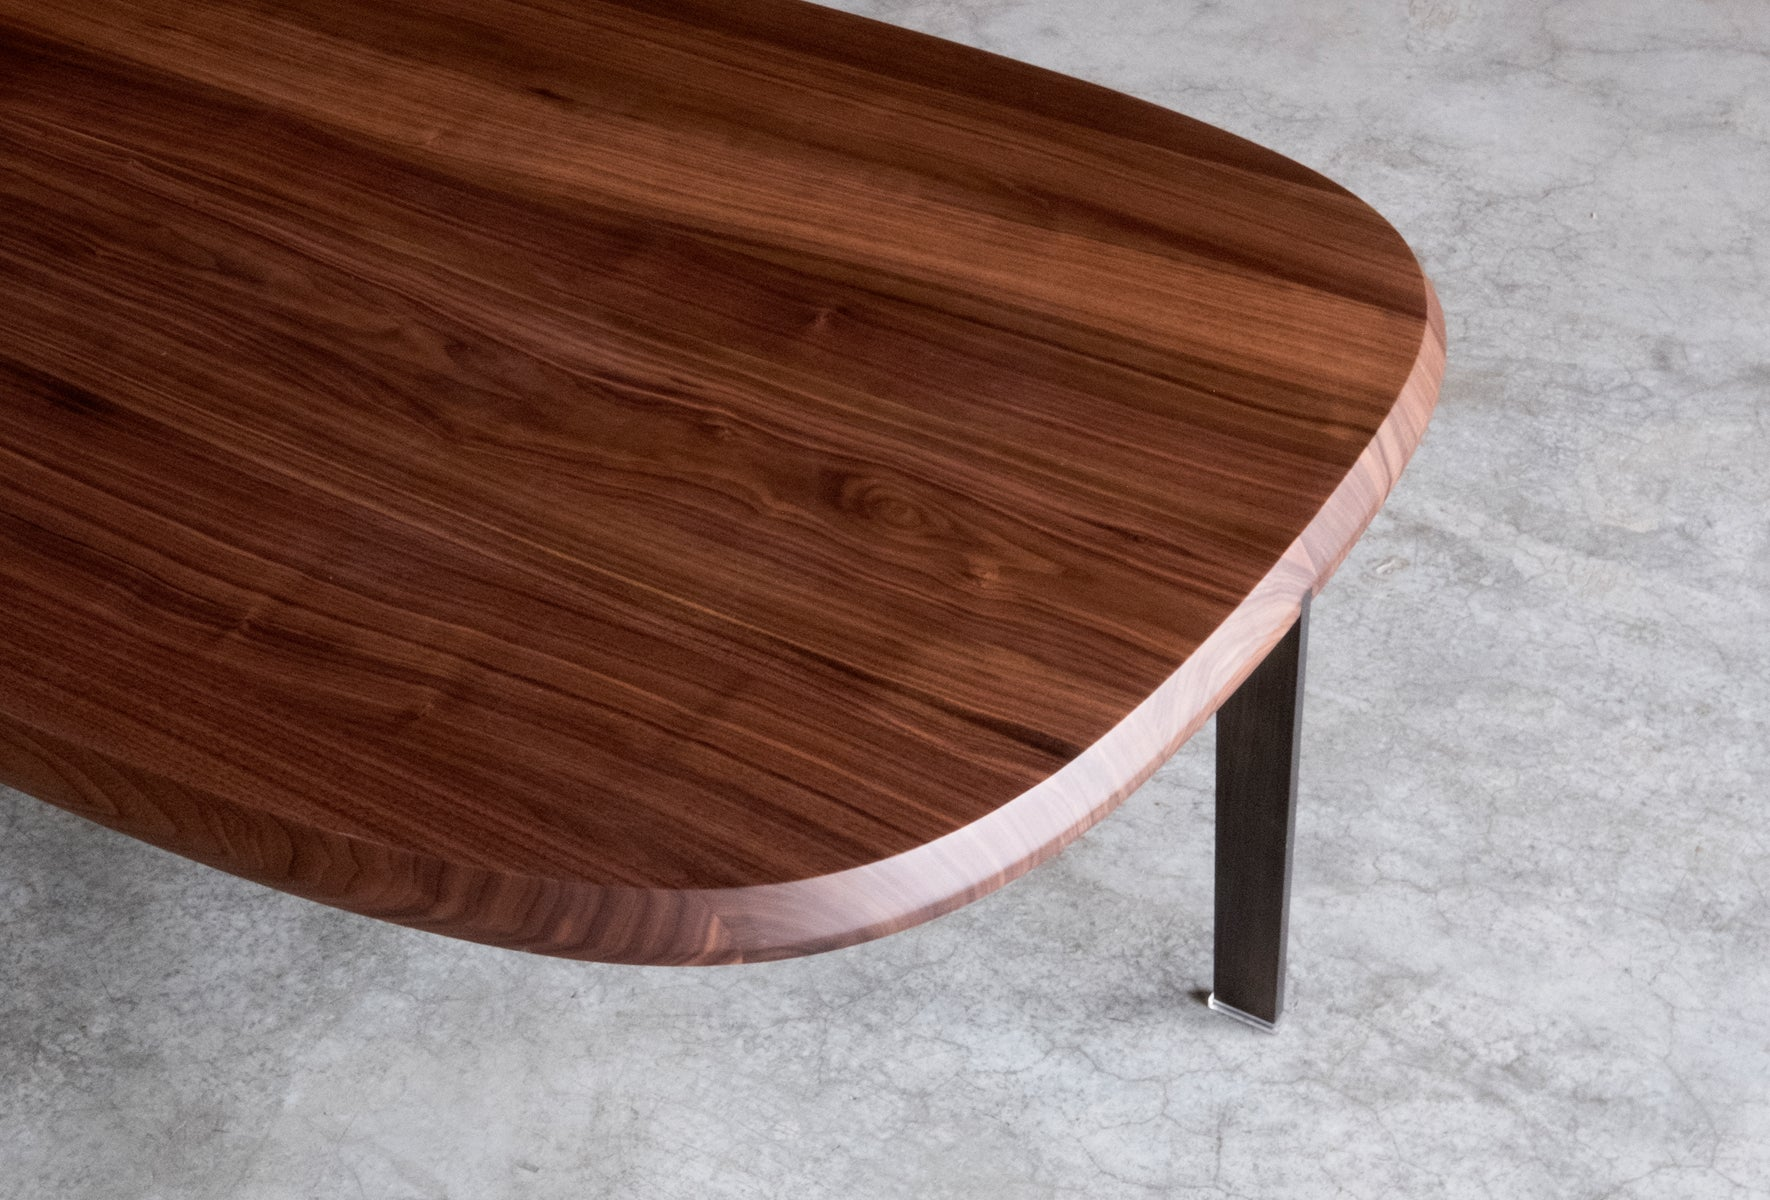 Bensen - Area Coffee Table